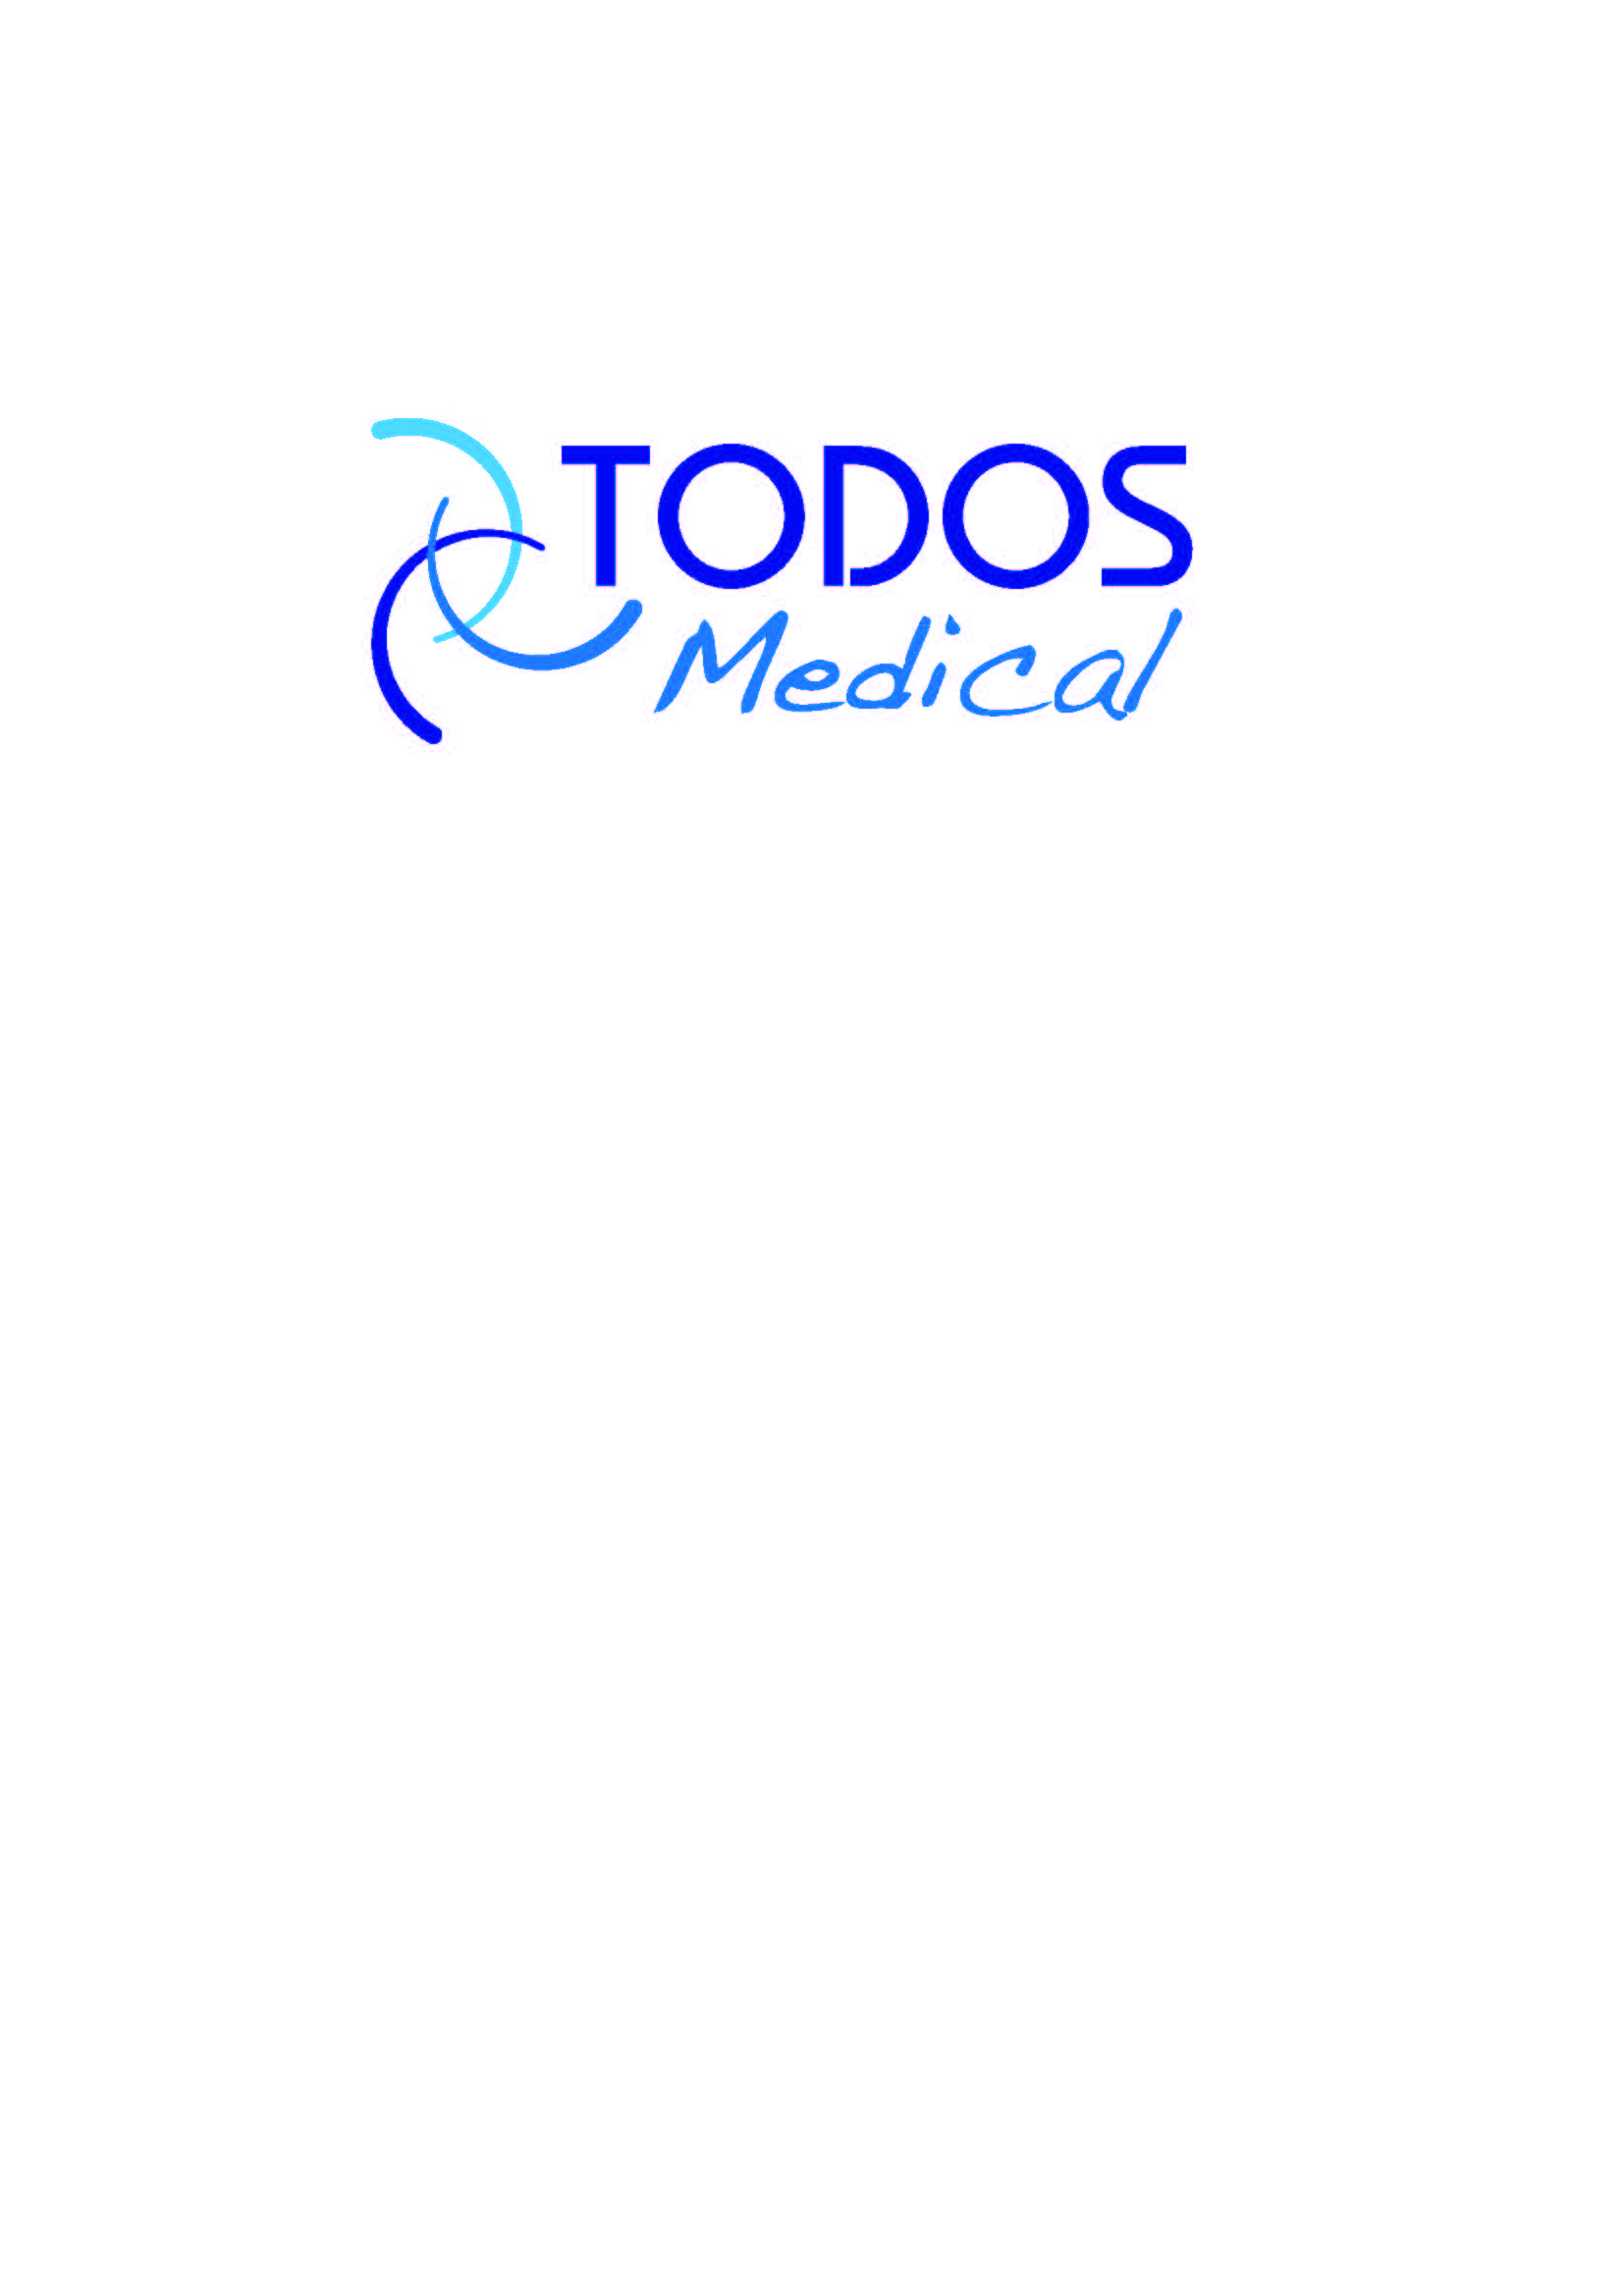 Todos Medical, Ltd